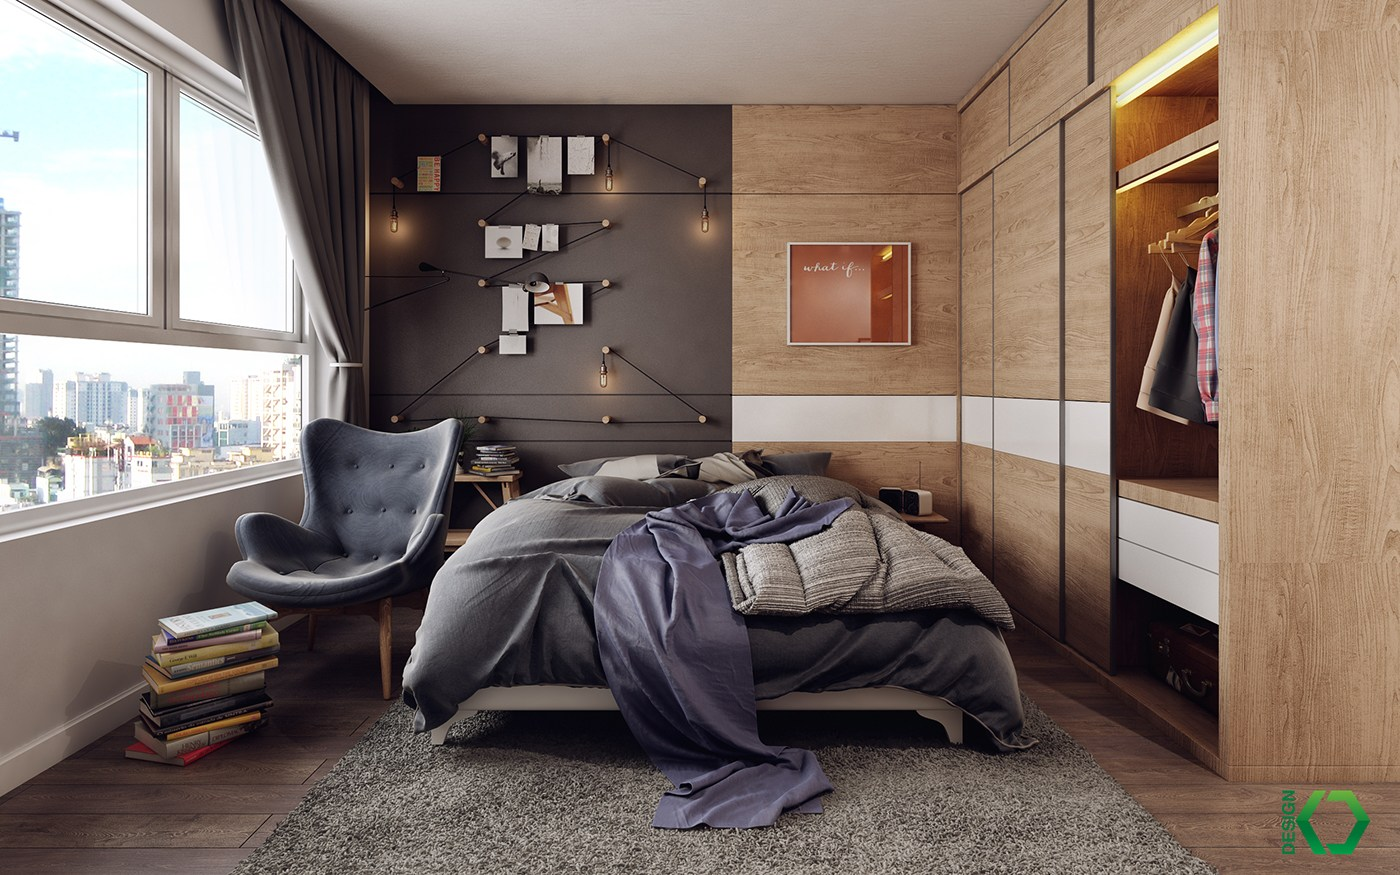 Scandinavian bedroom interior design. A Charming Nordic Apartment Interior Design by Koj Design